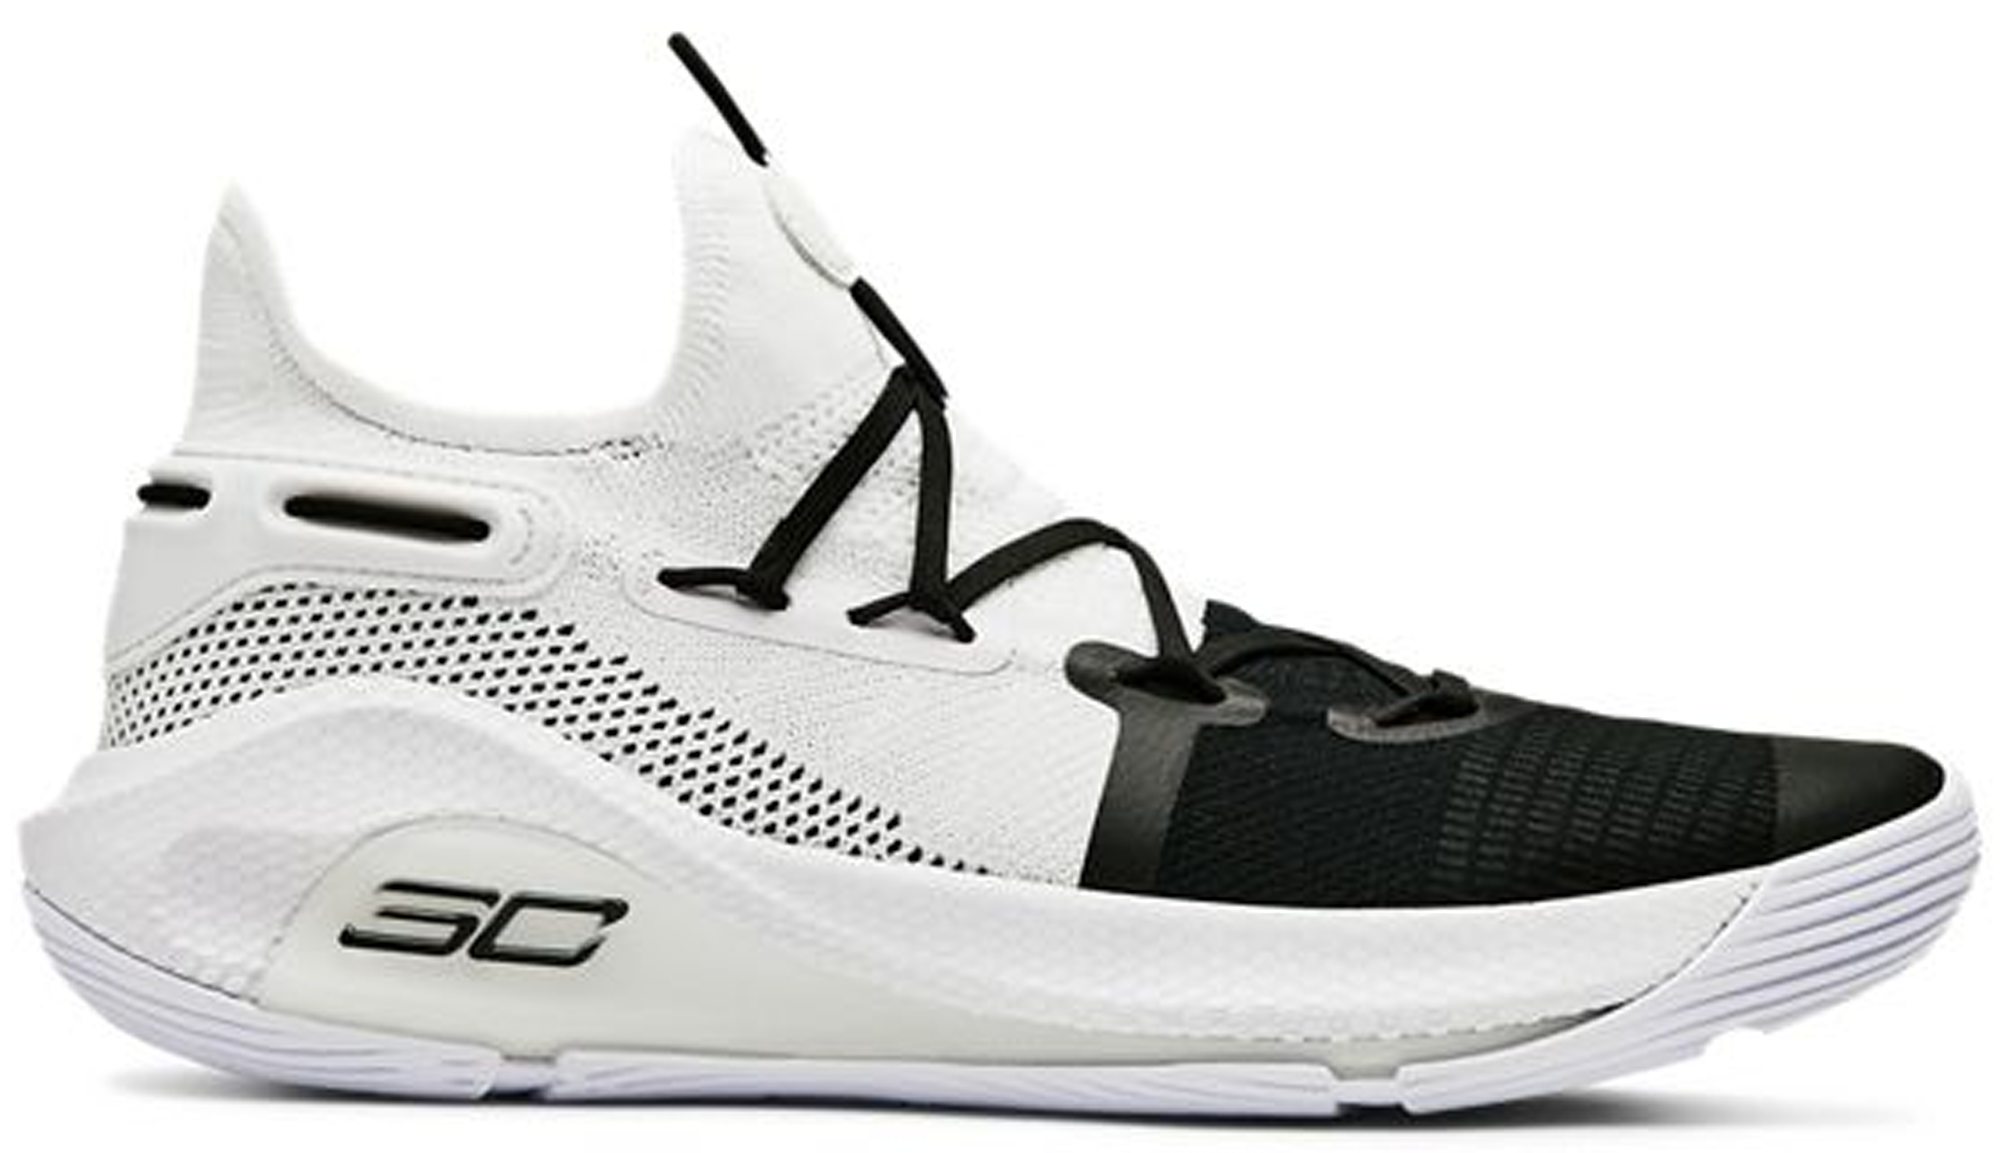 Under Armour Curry 6 Working on